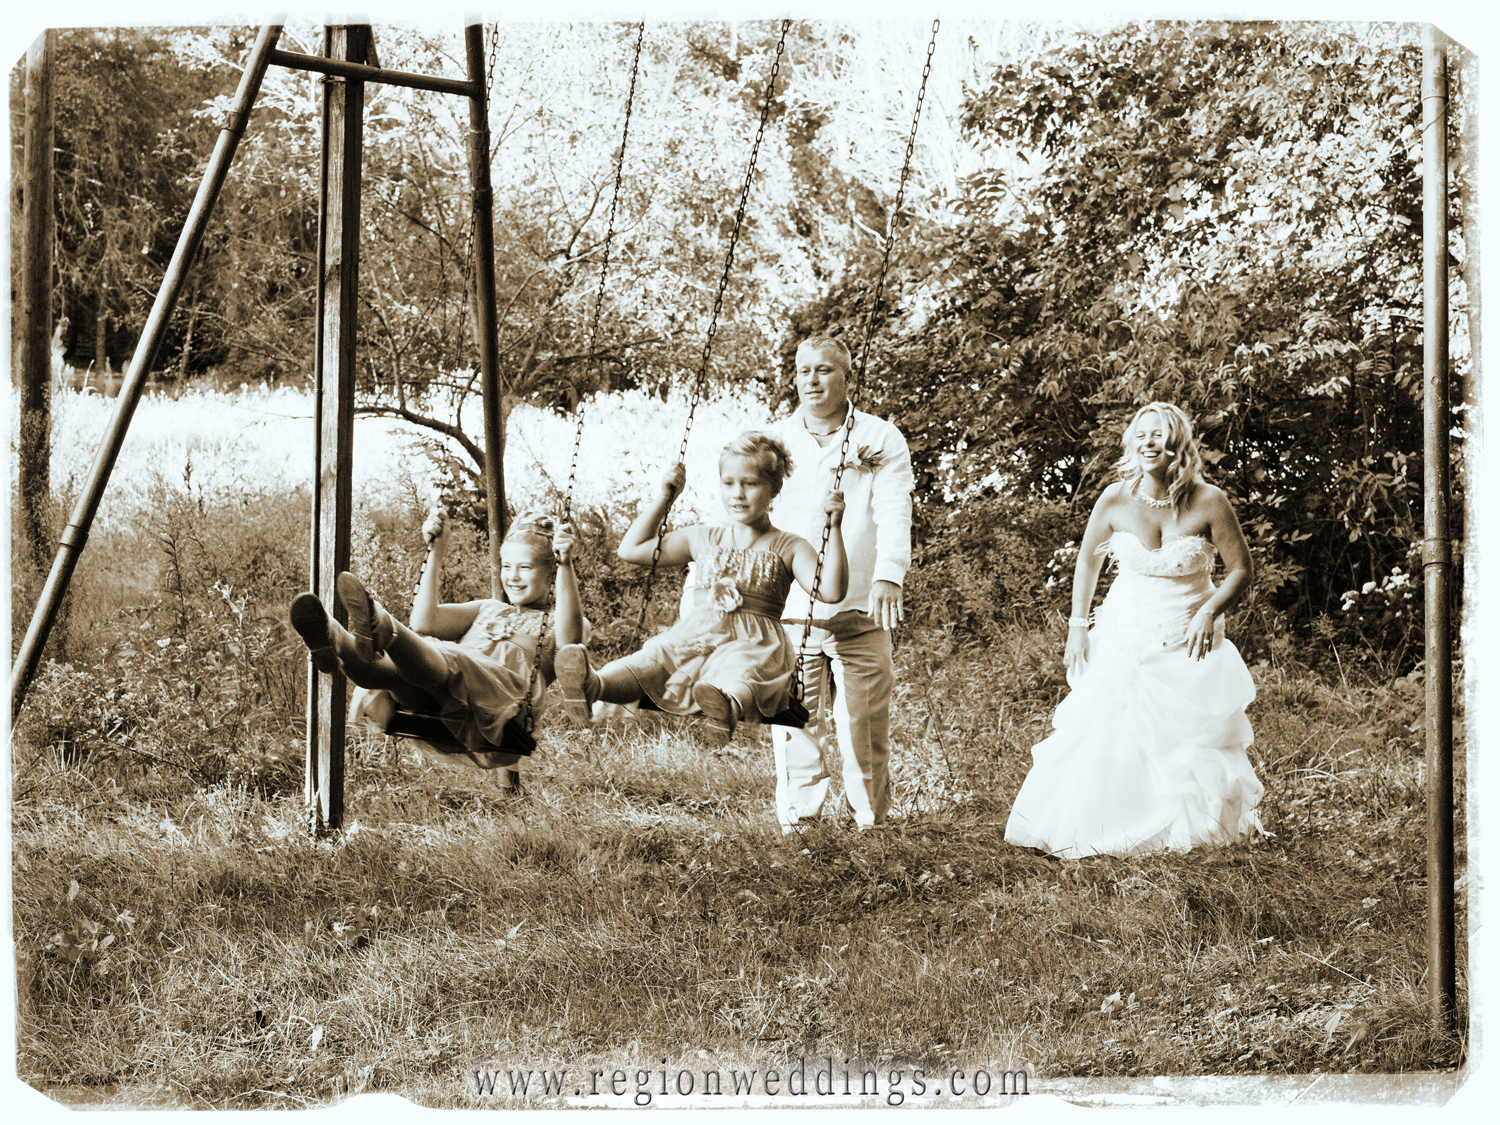 The bride and groom play with their daughters on a swing set before their summer wedding in this tender moment family photo.